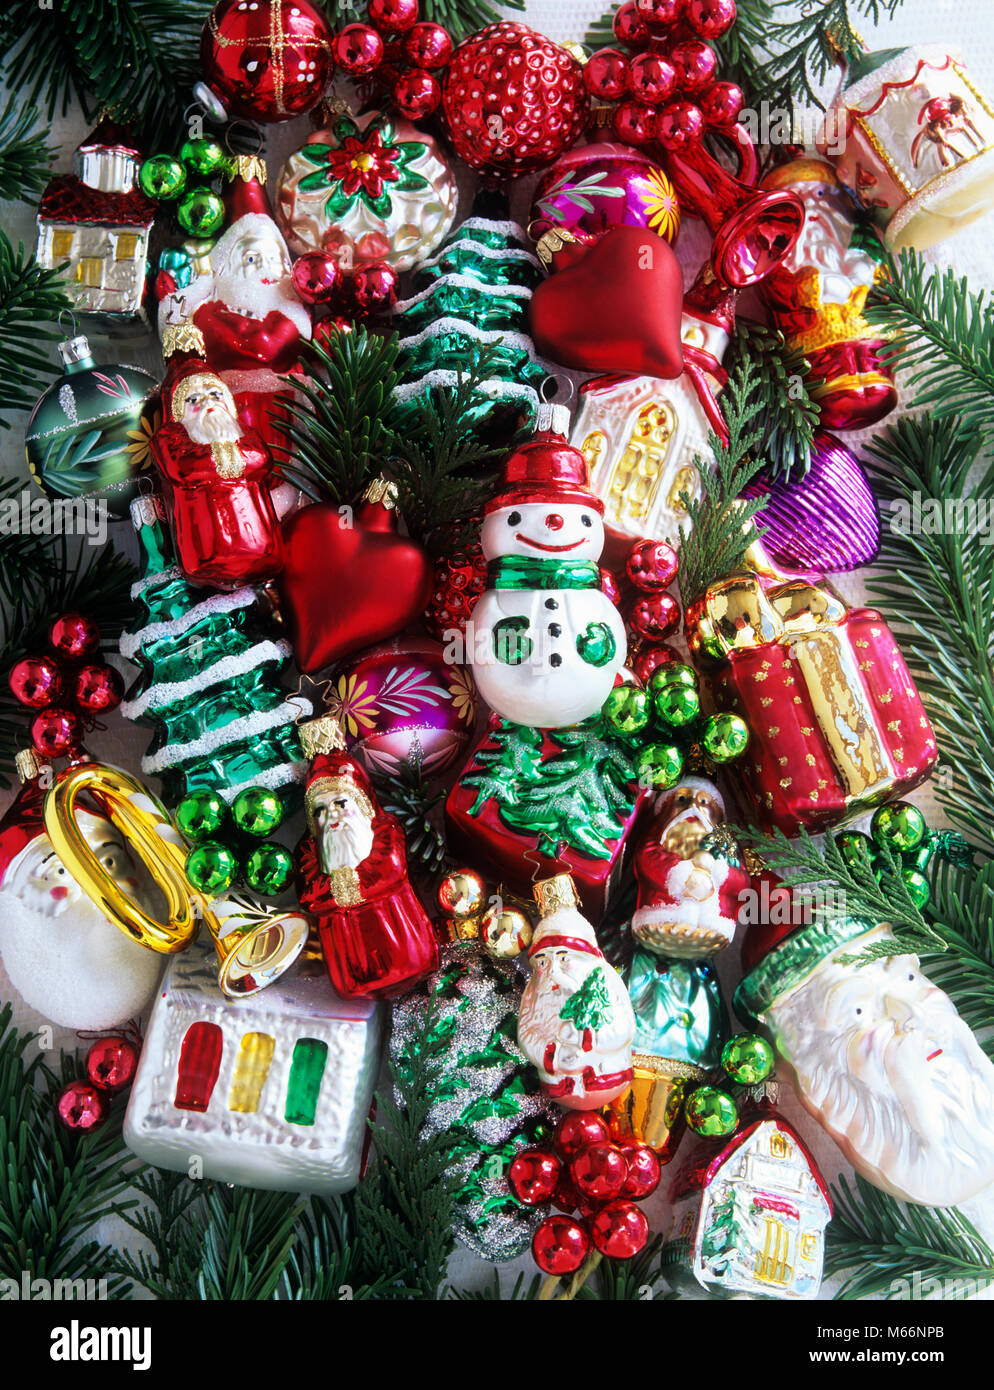 ASSORTED CHRISTMAS TREE ORNAMENTS - kx13078 MAT002 HARS OLD ...